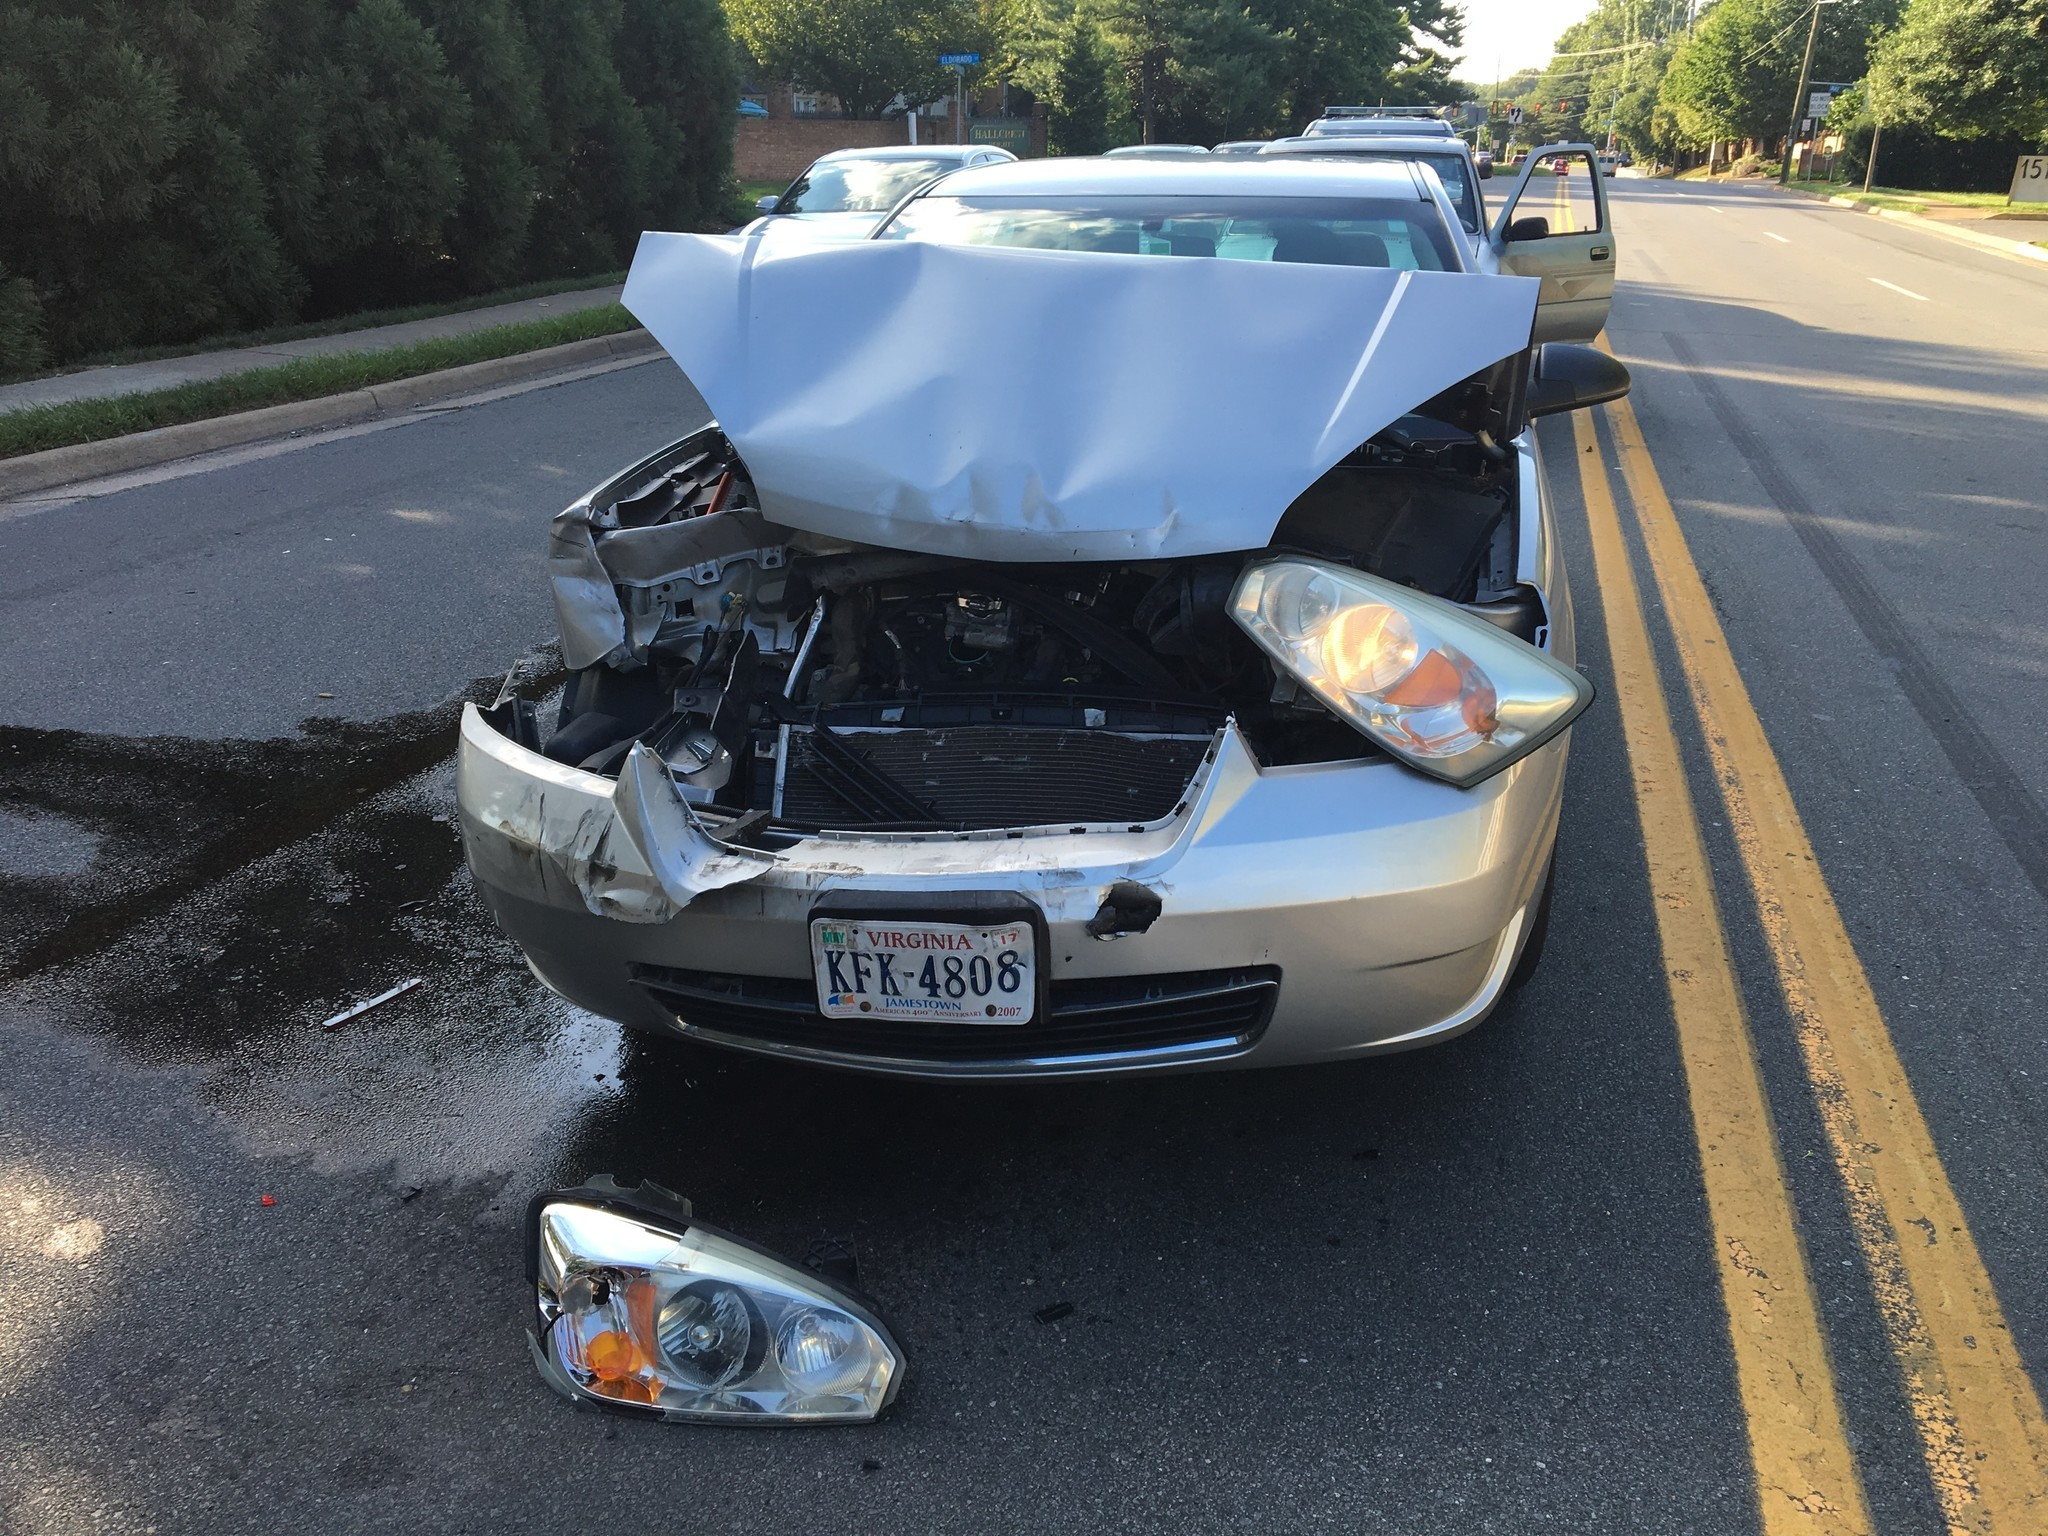 Car Insurance Premium Increase After Accident